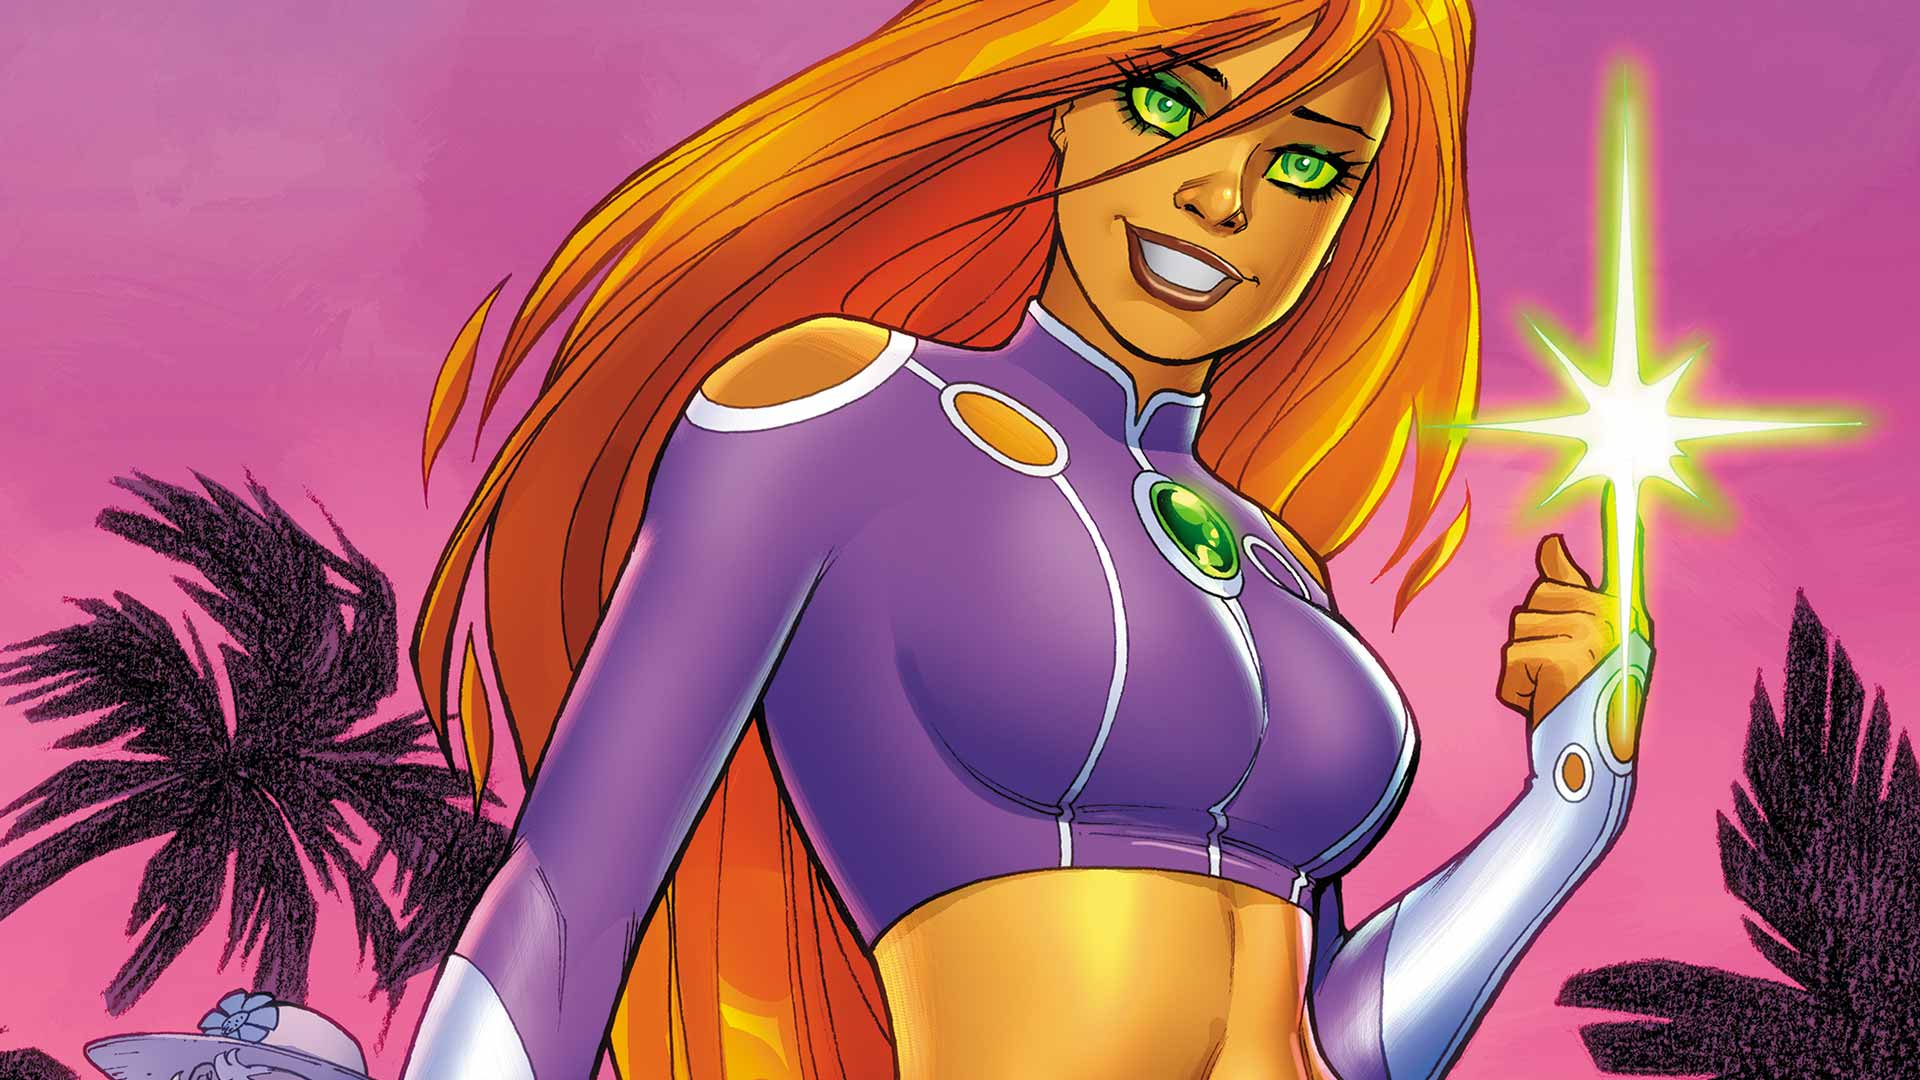 Starfire Backgrounds, Compatible - PC, Mobile, Gadgets| 1920x1080 px